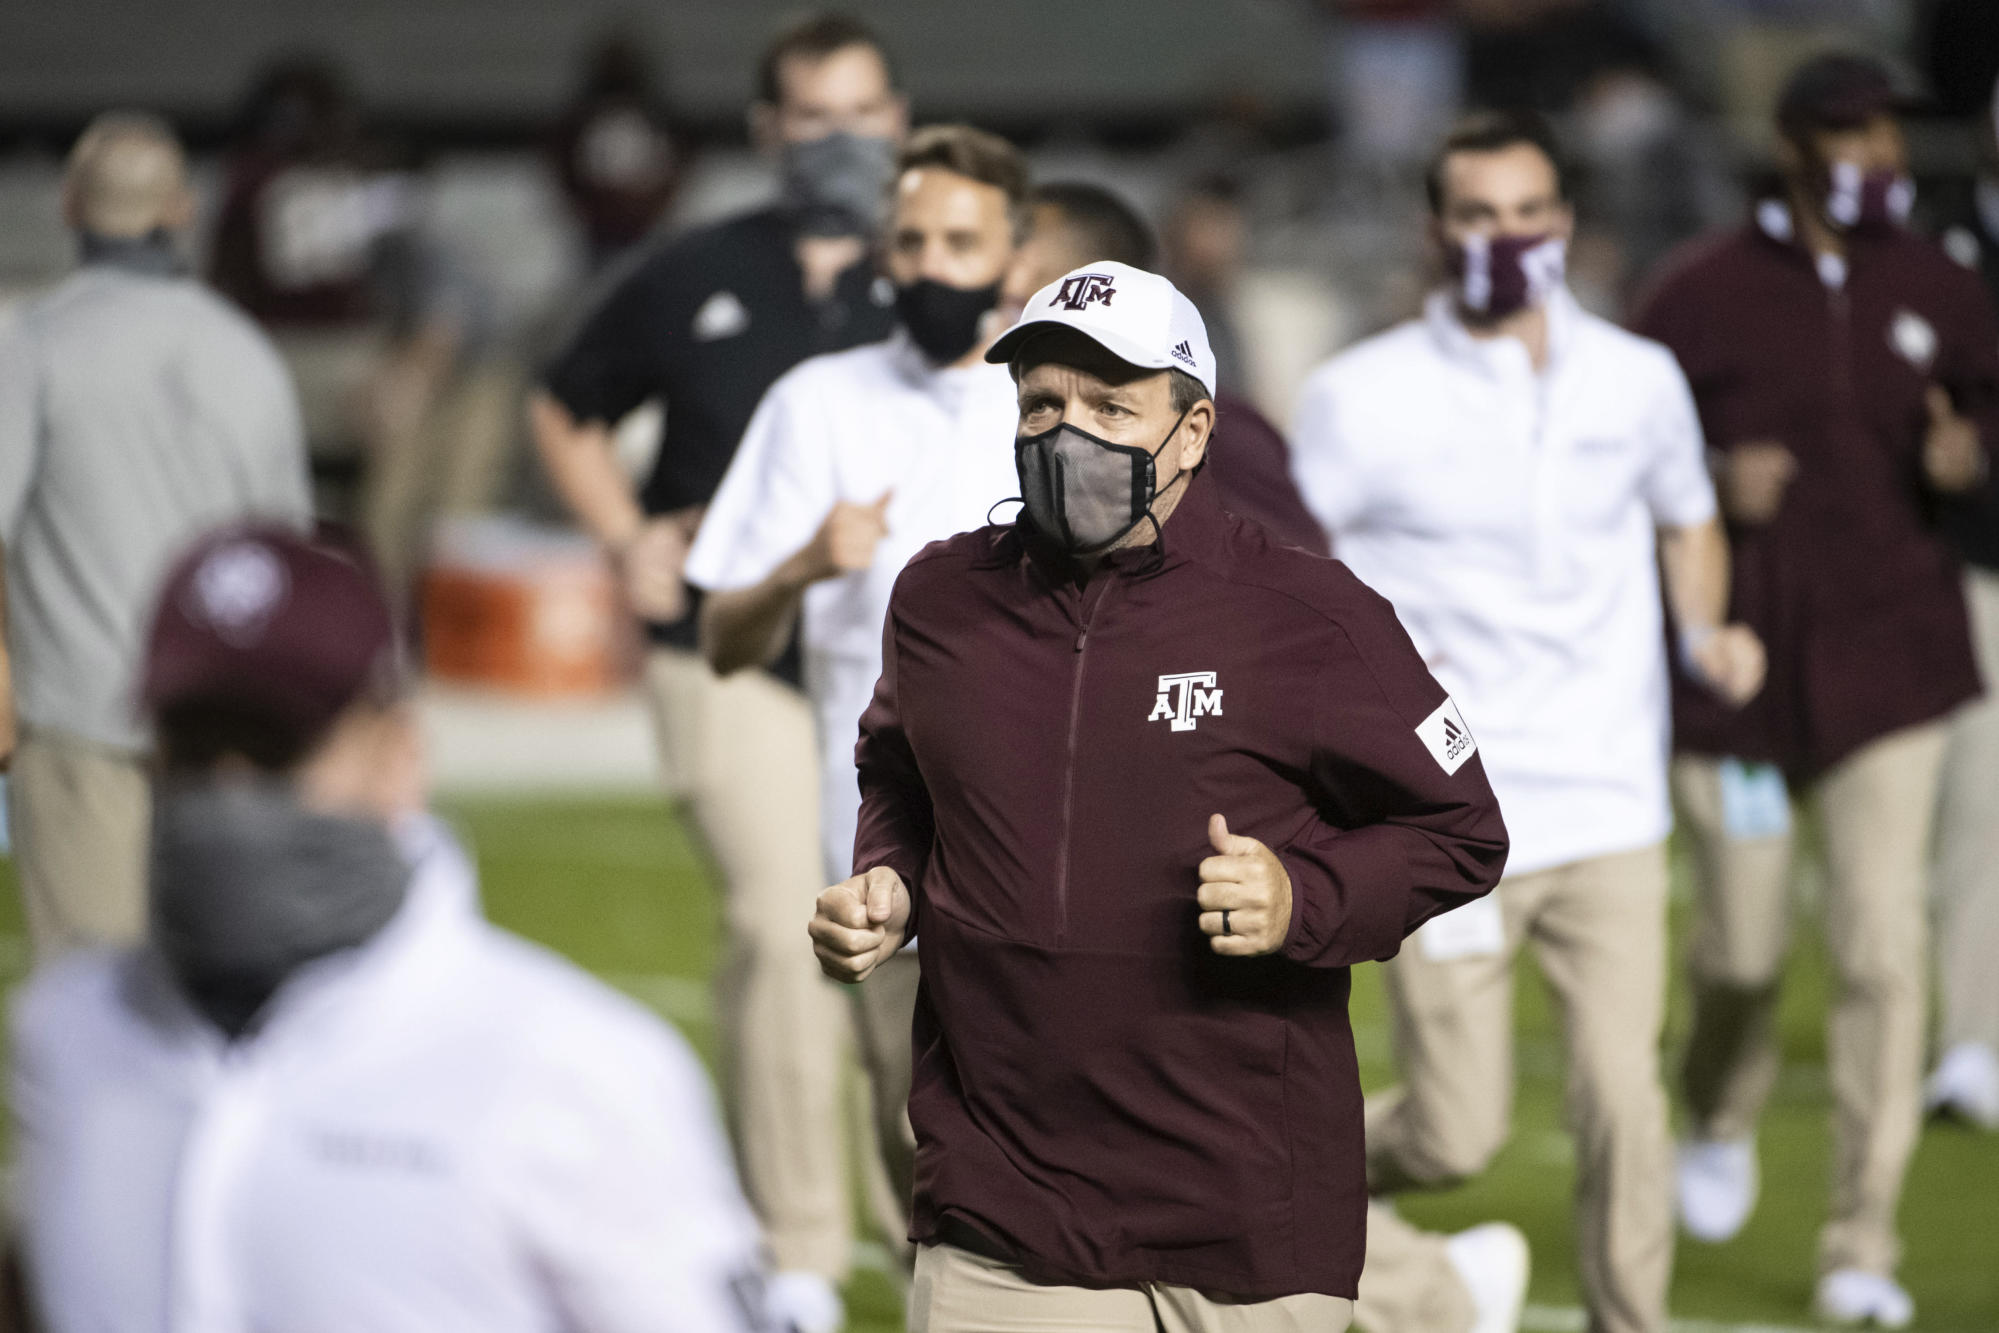 SEC has a new look in 2020 with rise of Aggies and Gators